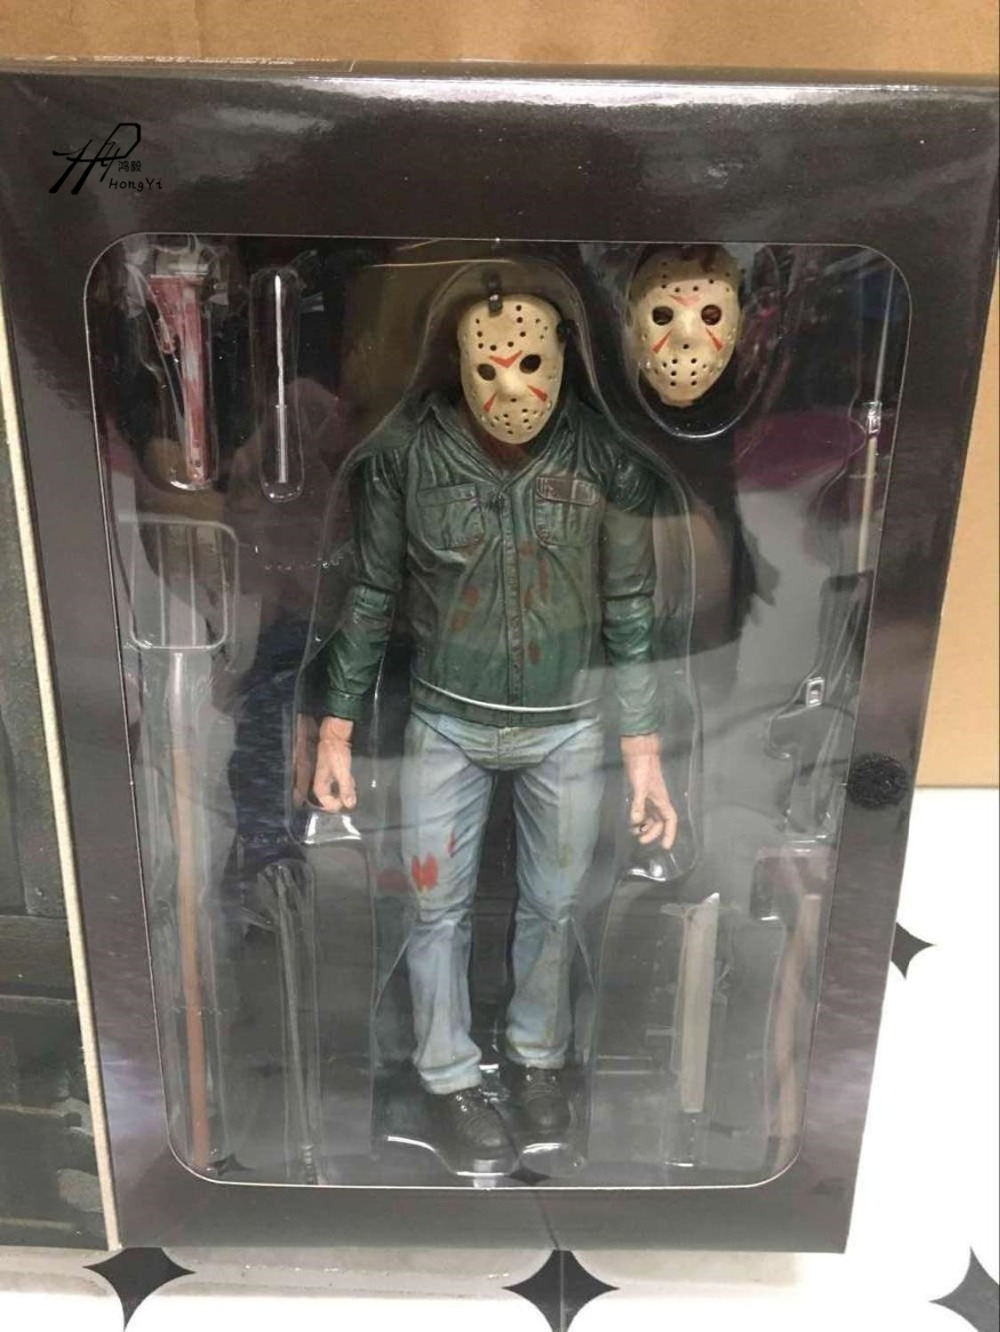 NECA A Nightmare on Elm Street 3: Dream Warriors PVC Action Figure Collectible Model Toy 7 18cm neca the texas chainsaw massacre pvc action figure collectible model toy 18cm 7 kt3703